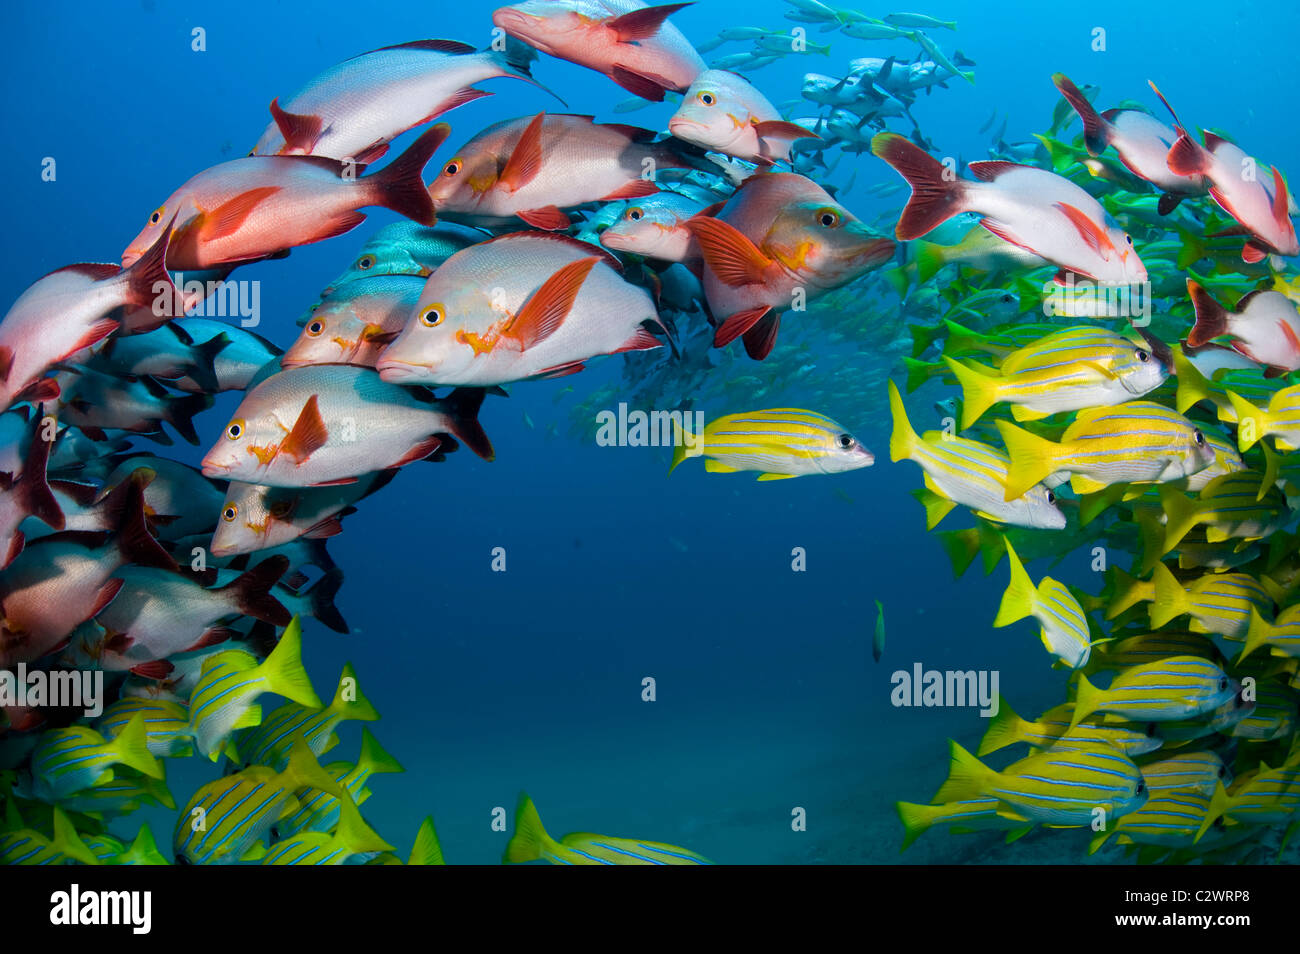 Schooling Bluestripe Snappers, Lutjanus kasmira and Humpback Snapper, Lutjanus gibbus, Sodwana Bay, South Africa - Stock Image